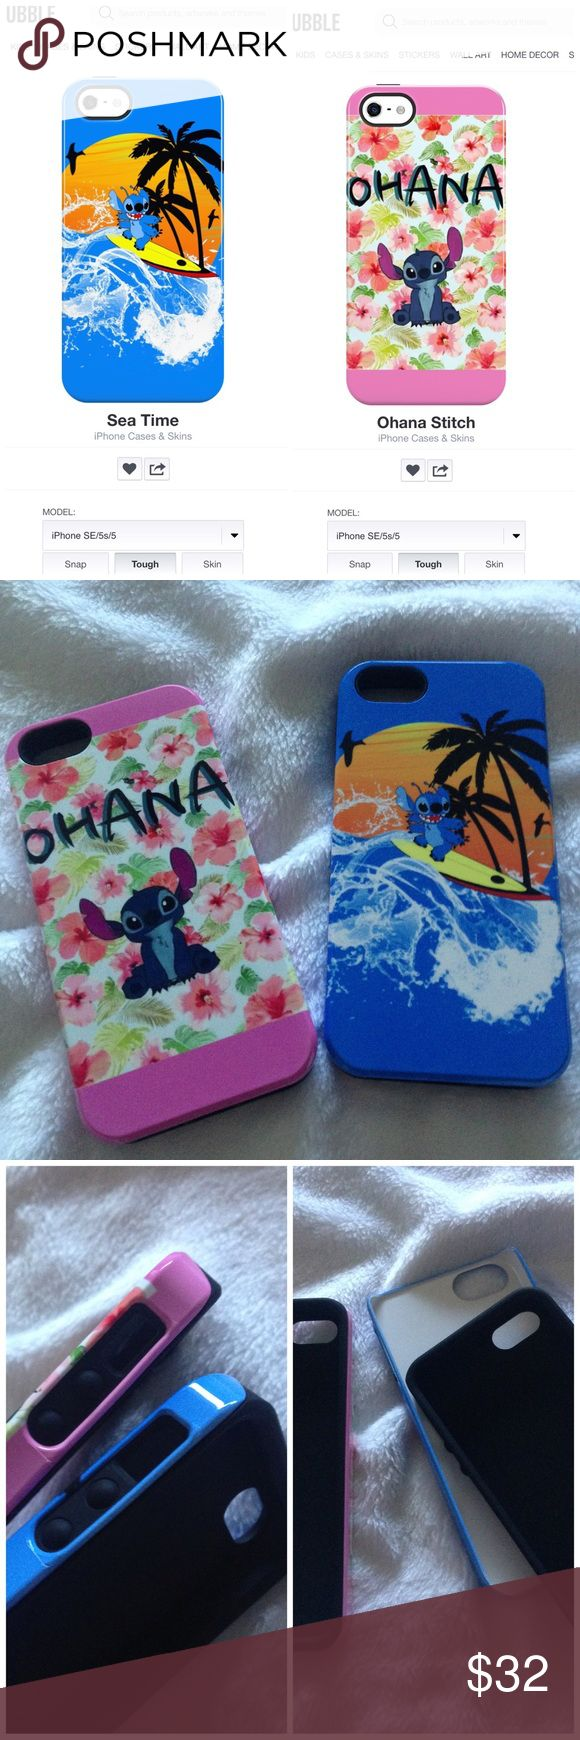 🆕Lilo and Stitch Disney iPhone 5/5s/SE tough case Bundle of two cute iPhone cases for iPhone 5, 5s, or SE, both featuring graphics of Stitch from Disney's Lilo and Stitch. Both cases feature an inner rubber portion and a hard plastic shell for maximum protection of your device. These are both brand new in original packaging from Redbubble and have never been used! (We were sent the wrong order on accident) Normally retailing for $30 each, this is a great bargain. Get both for $32, or each…